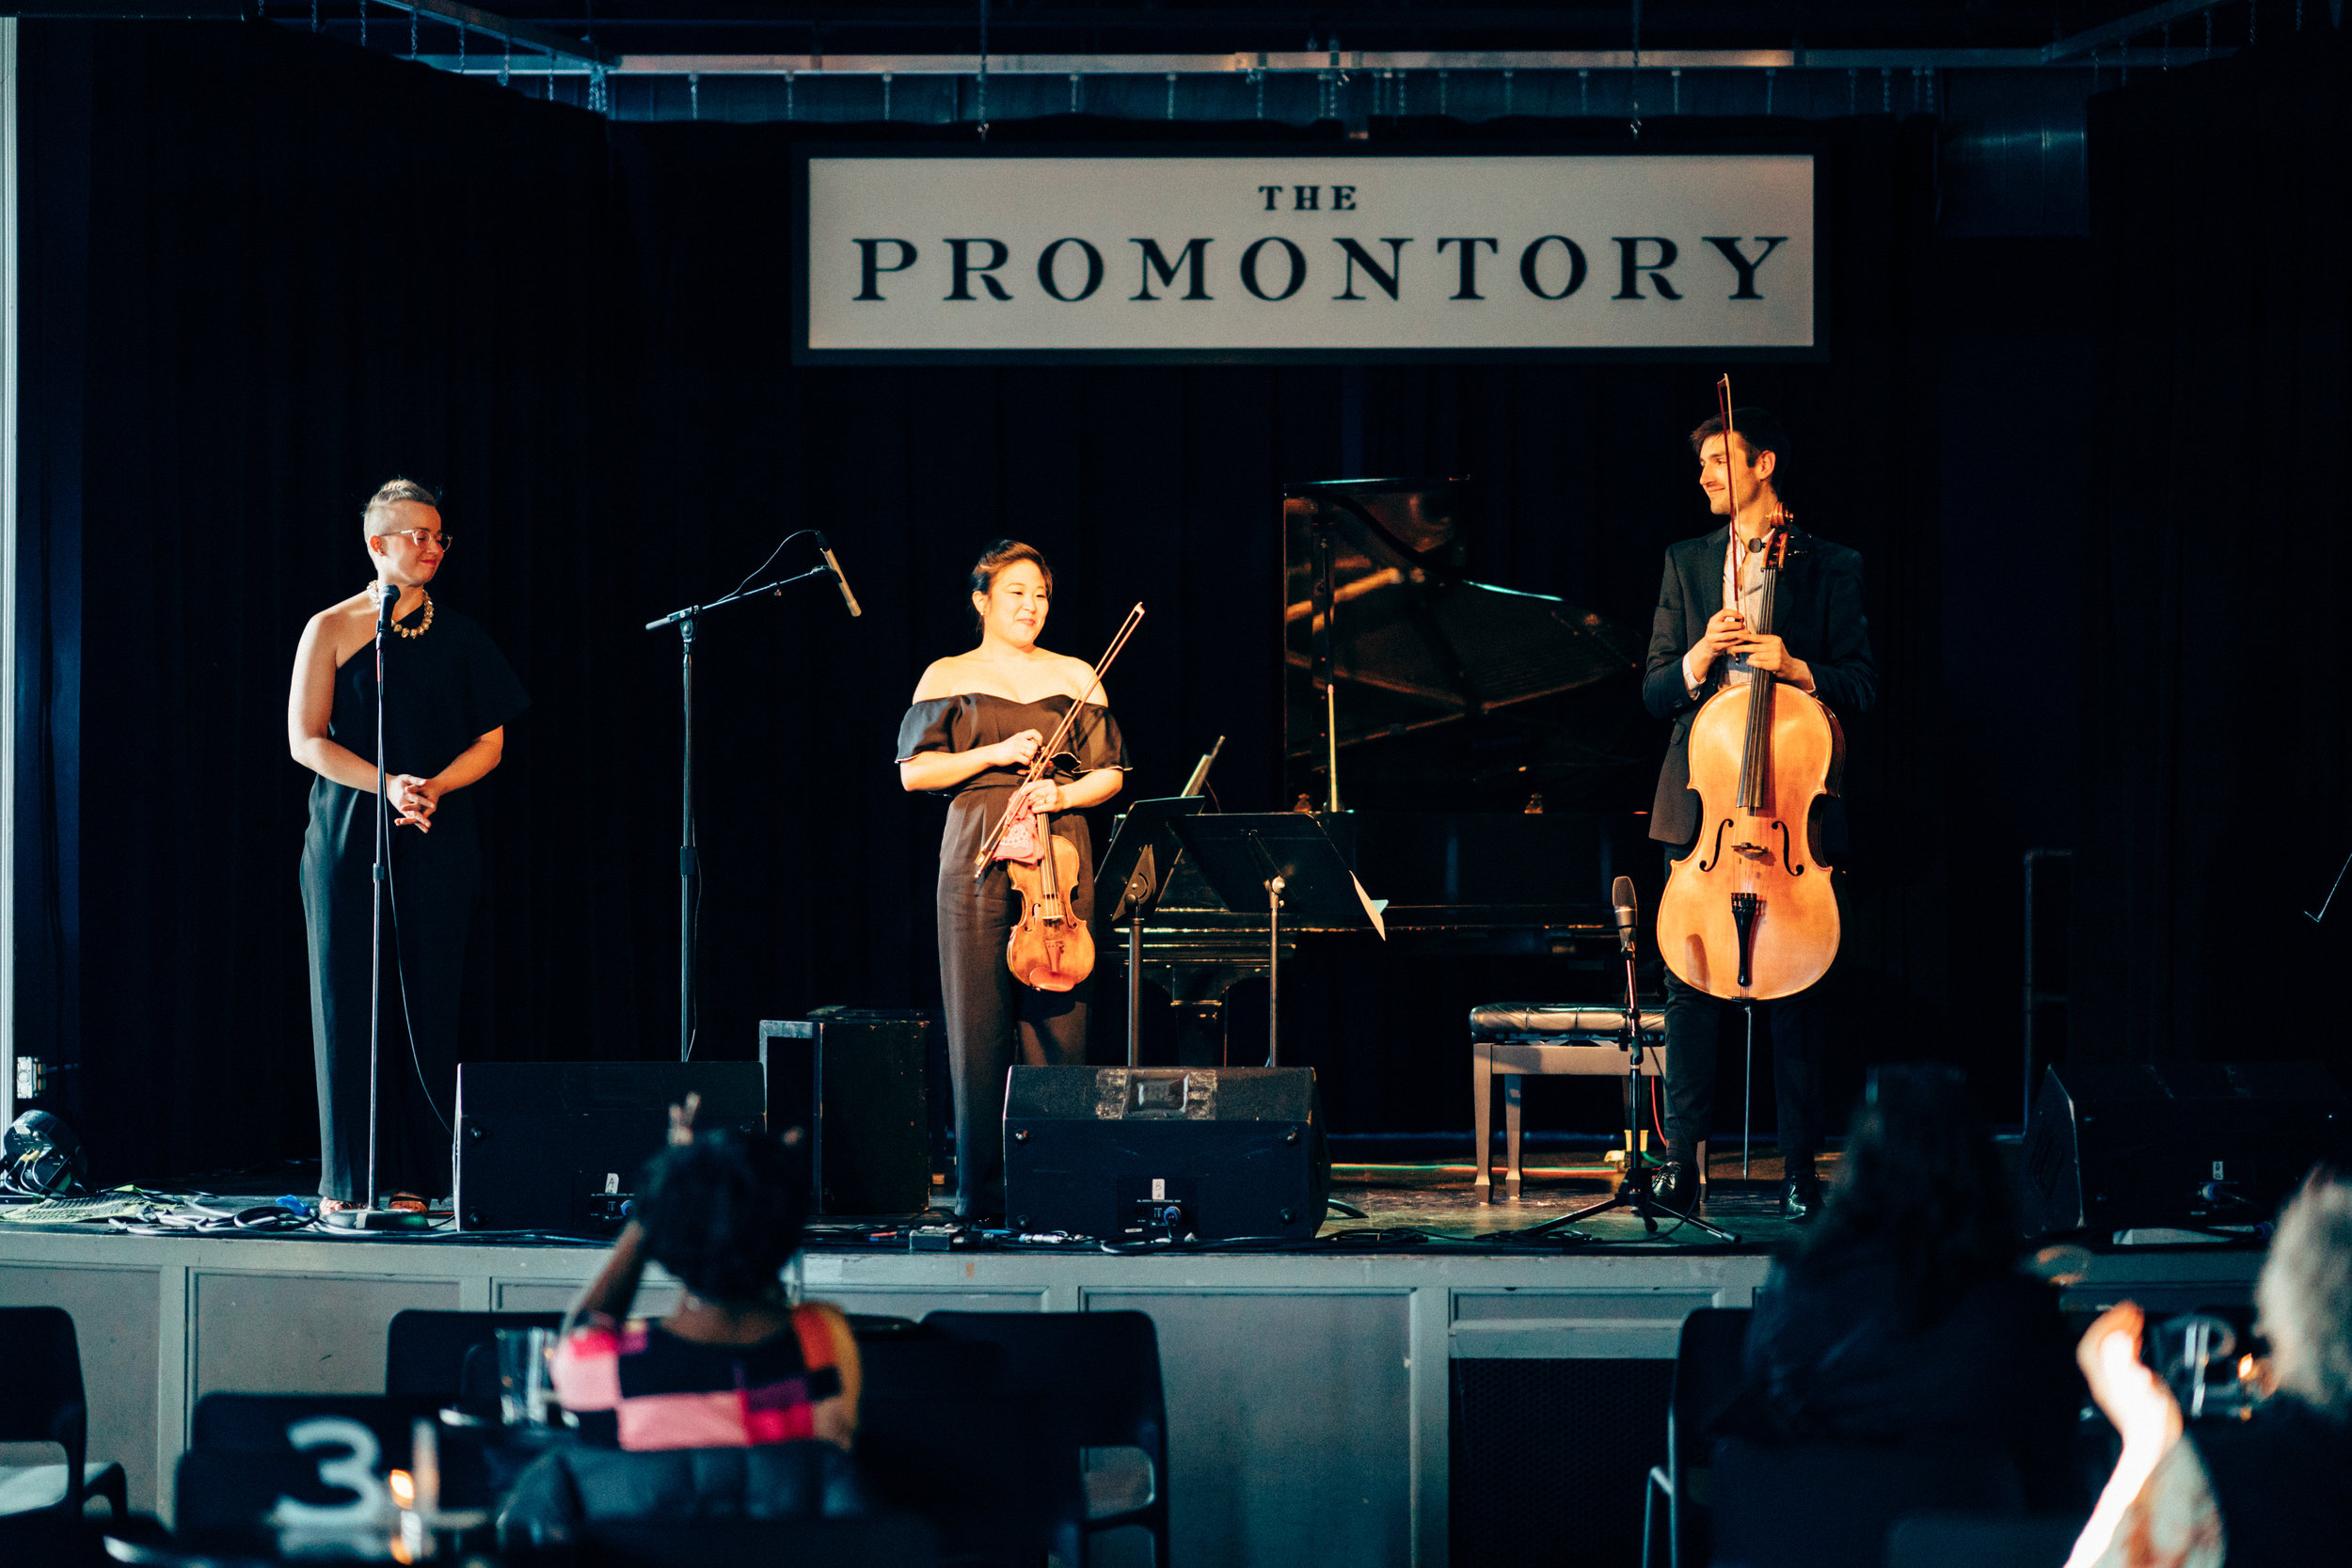 Bow & Hammer Deconstructed. The finale of our 3-concert residency at the Promontory.